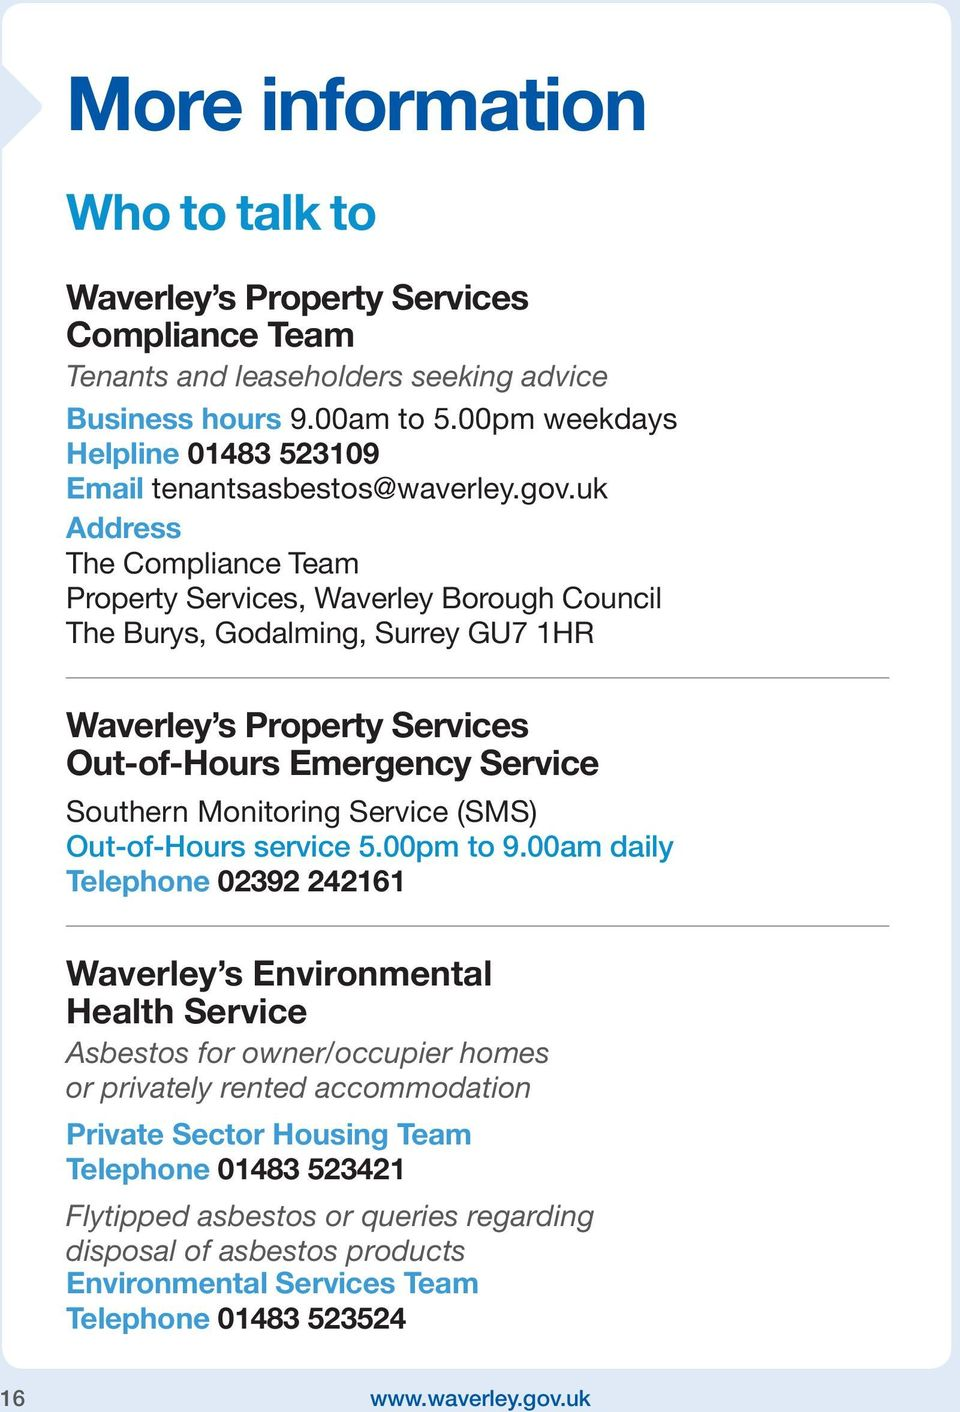 uk Address The Compliance Team Property Services, Waverley Borough Council The Burys, Godalming, Surrey GU7 1HR Waverley s Property Services Out-of-Hours Emergency Service Southern Monitoring